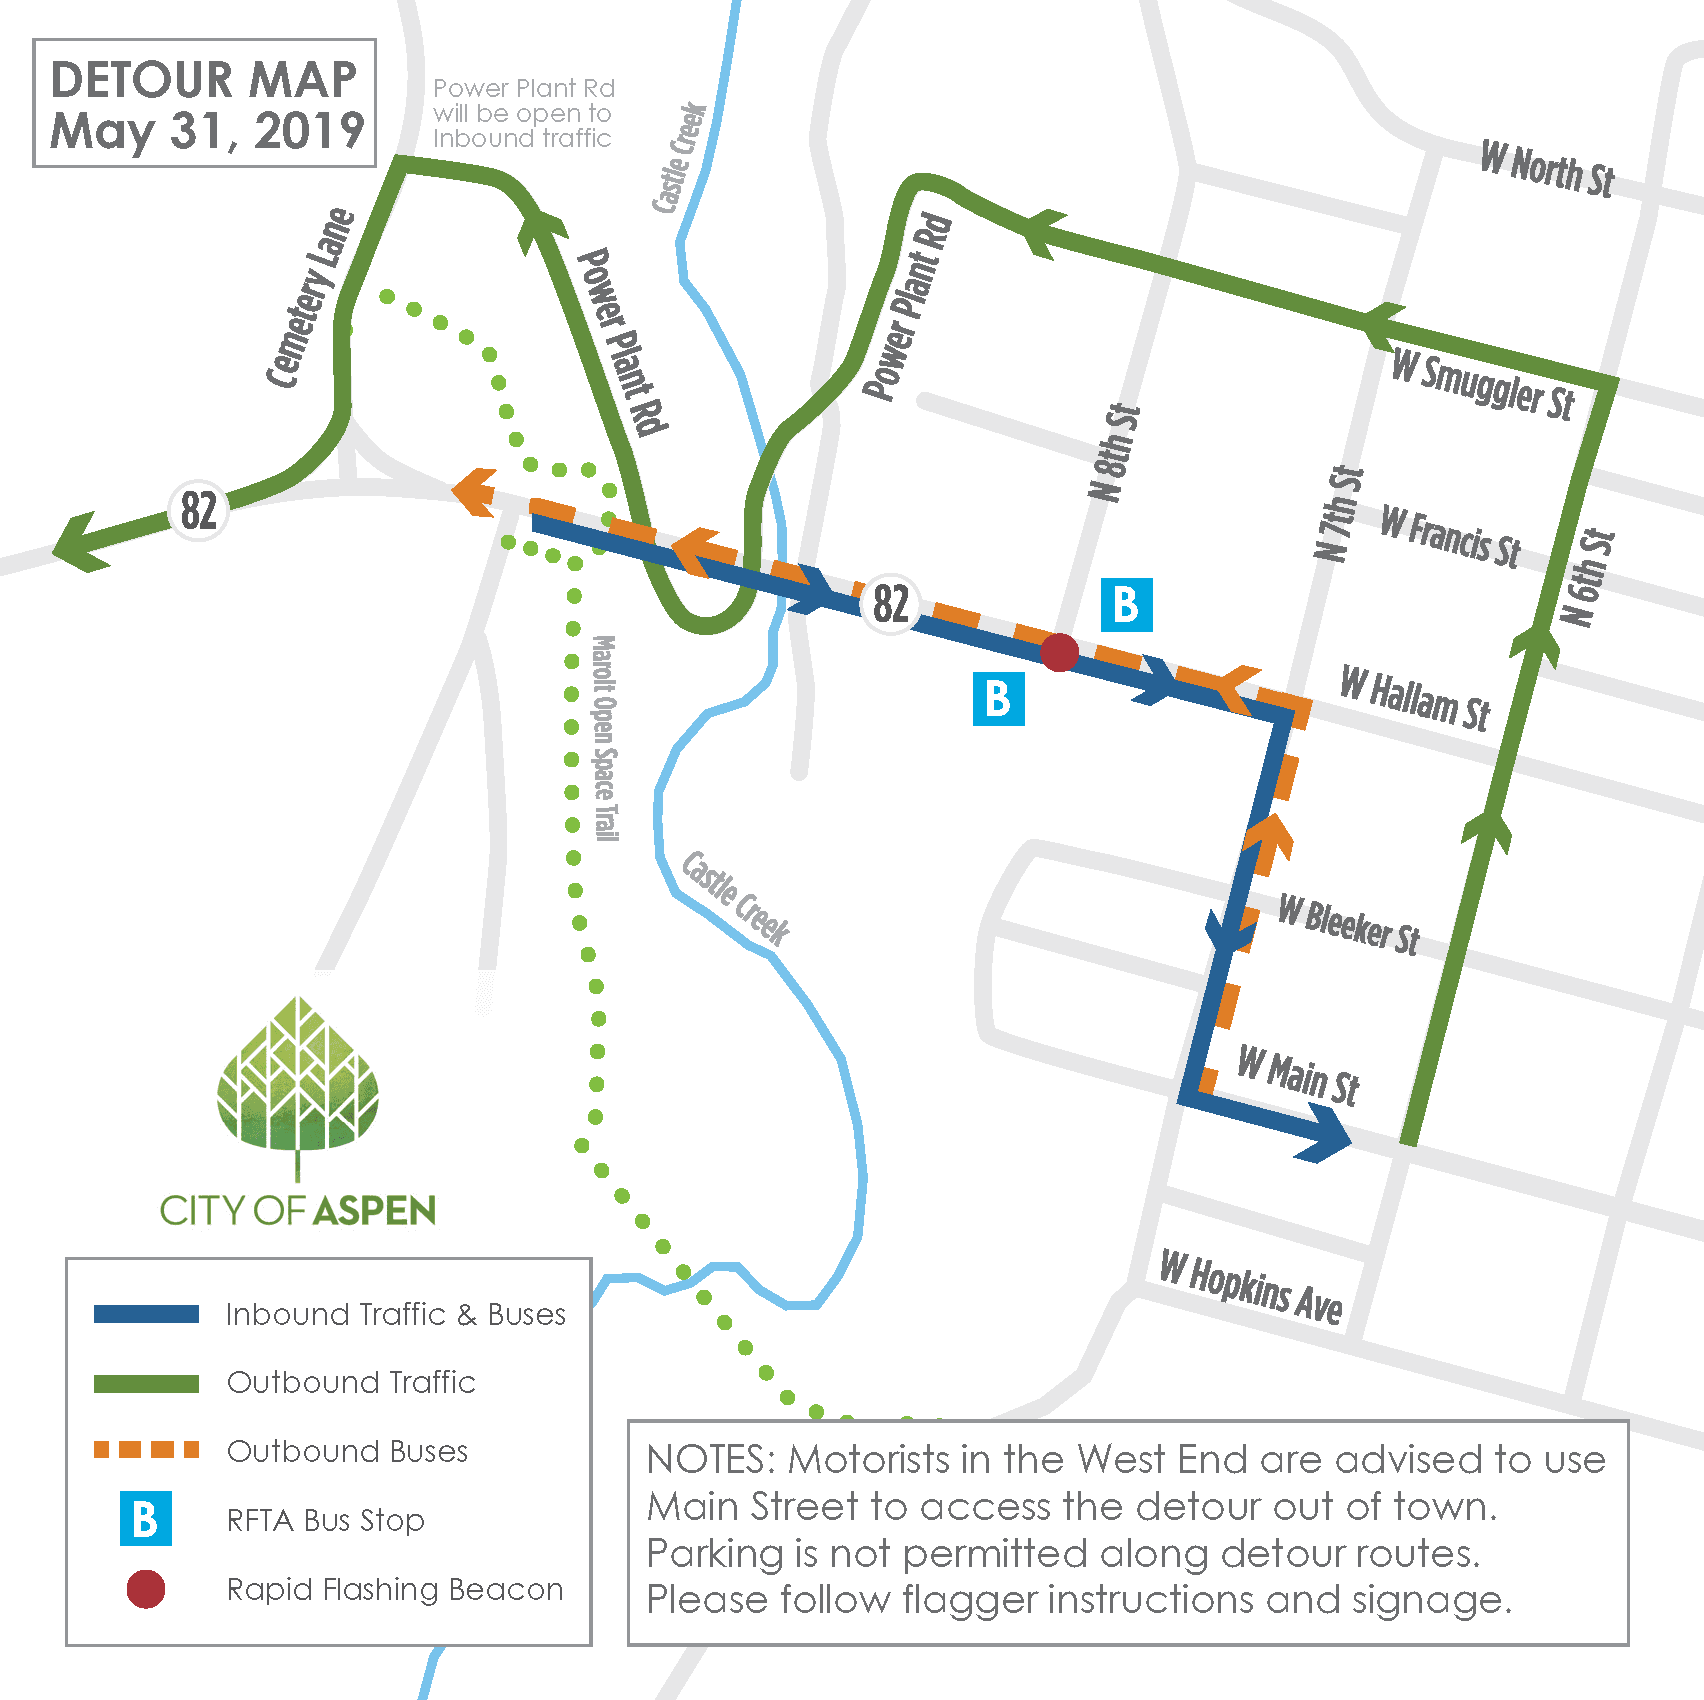 CCB Detour Map - May 31